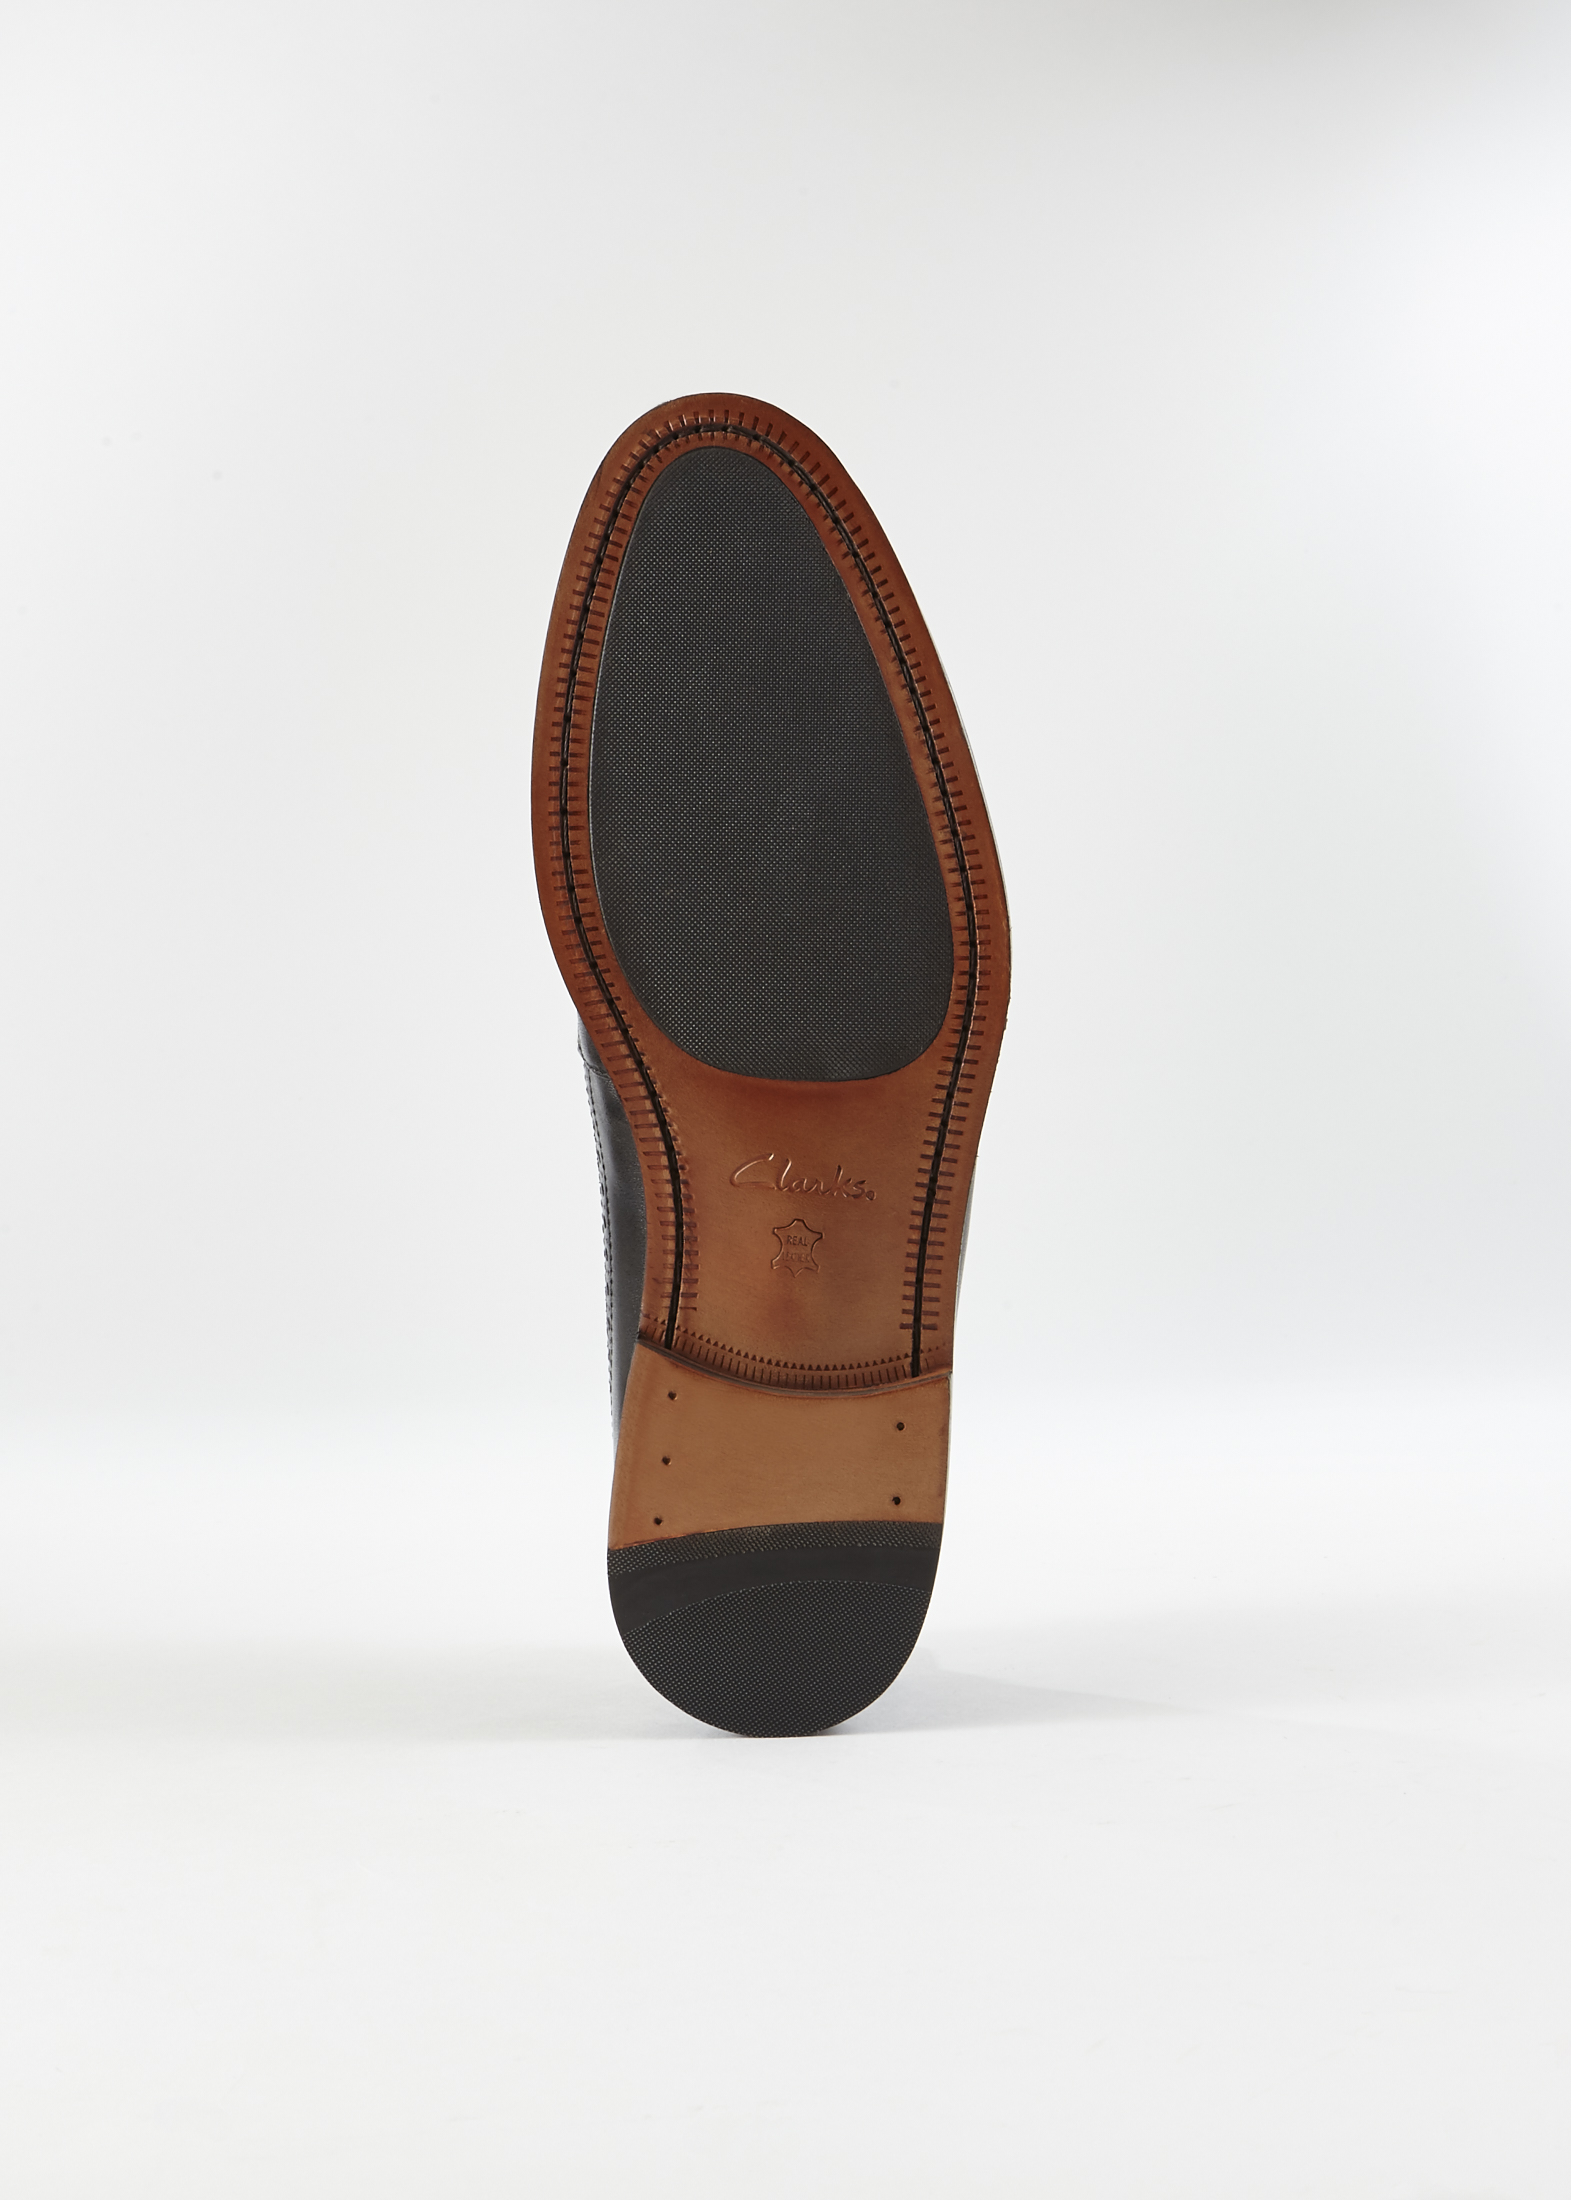 Clarks_Test_Shoes_01_Shot_005.jpg